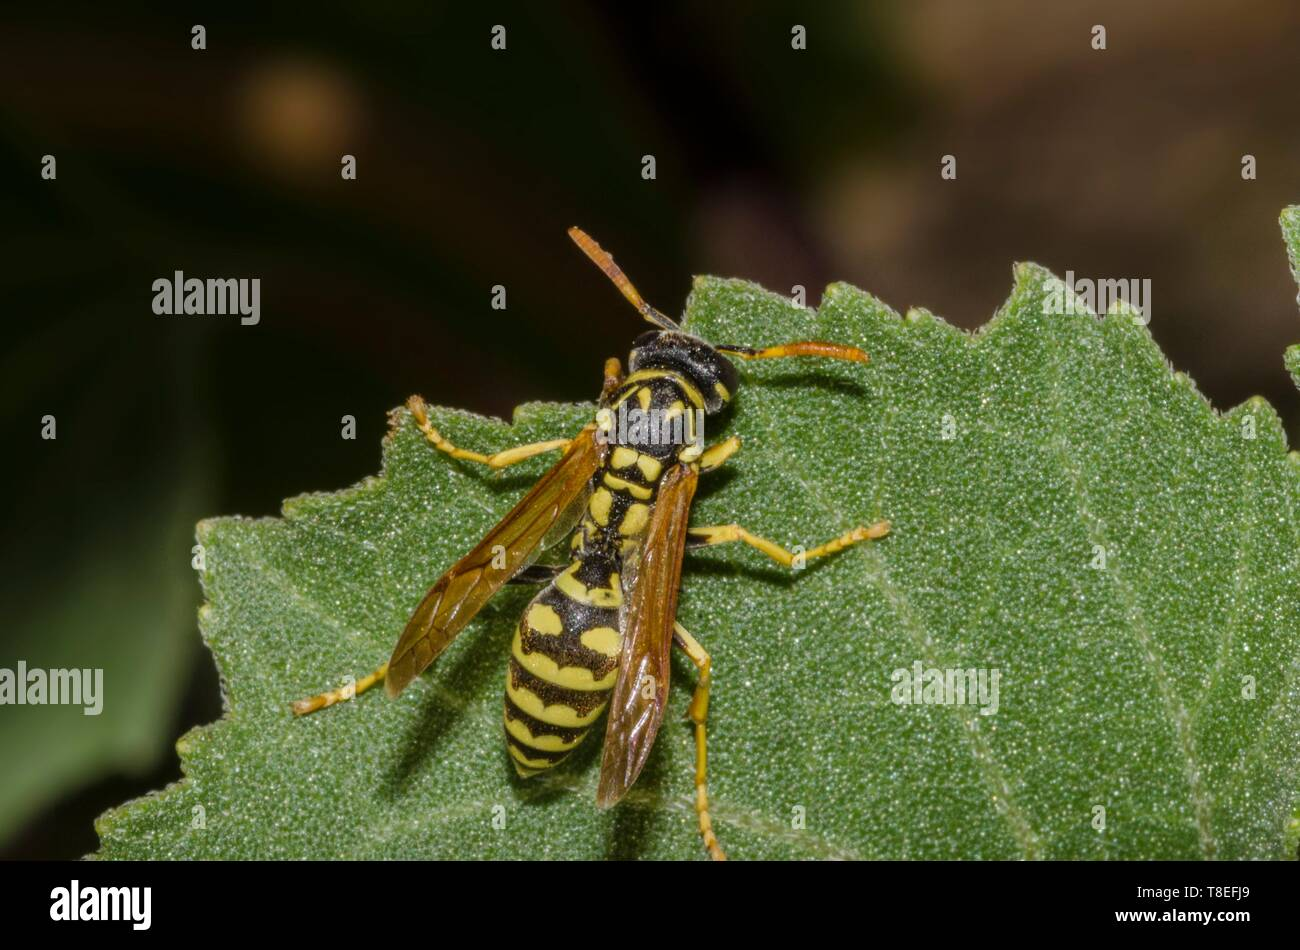 Specimen of wasp in the foreground on green leaf - Stock Image